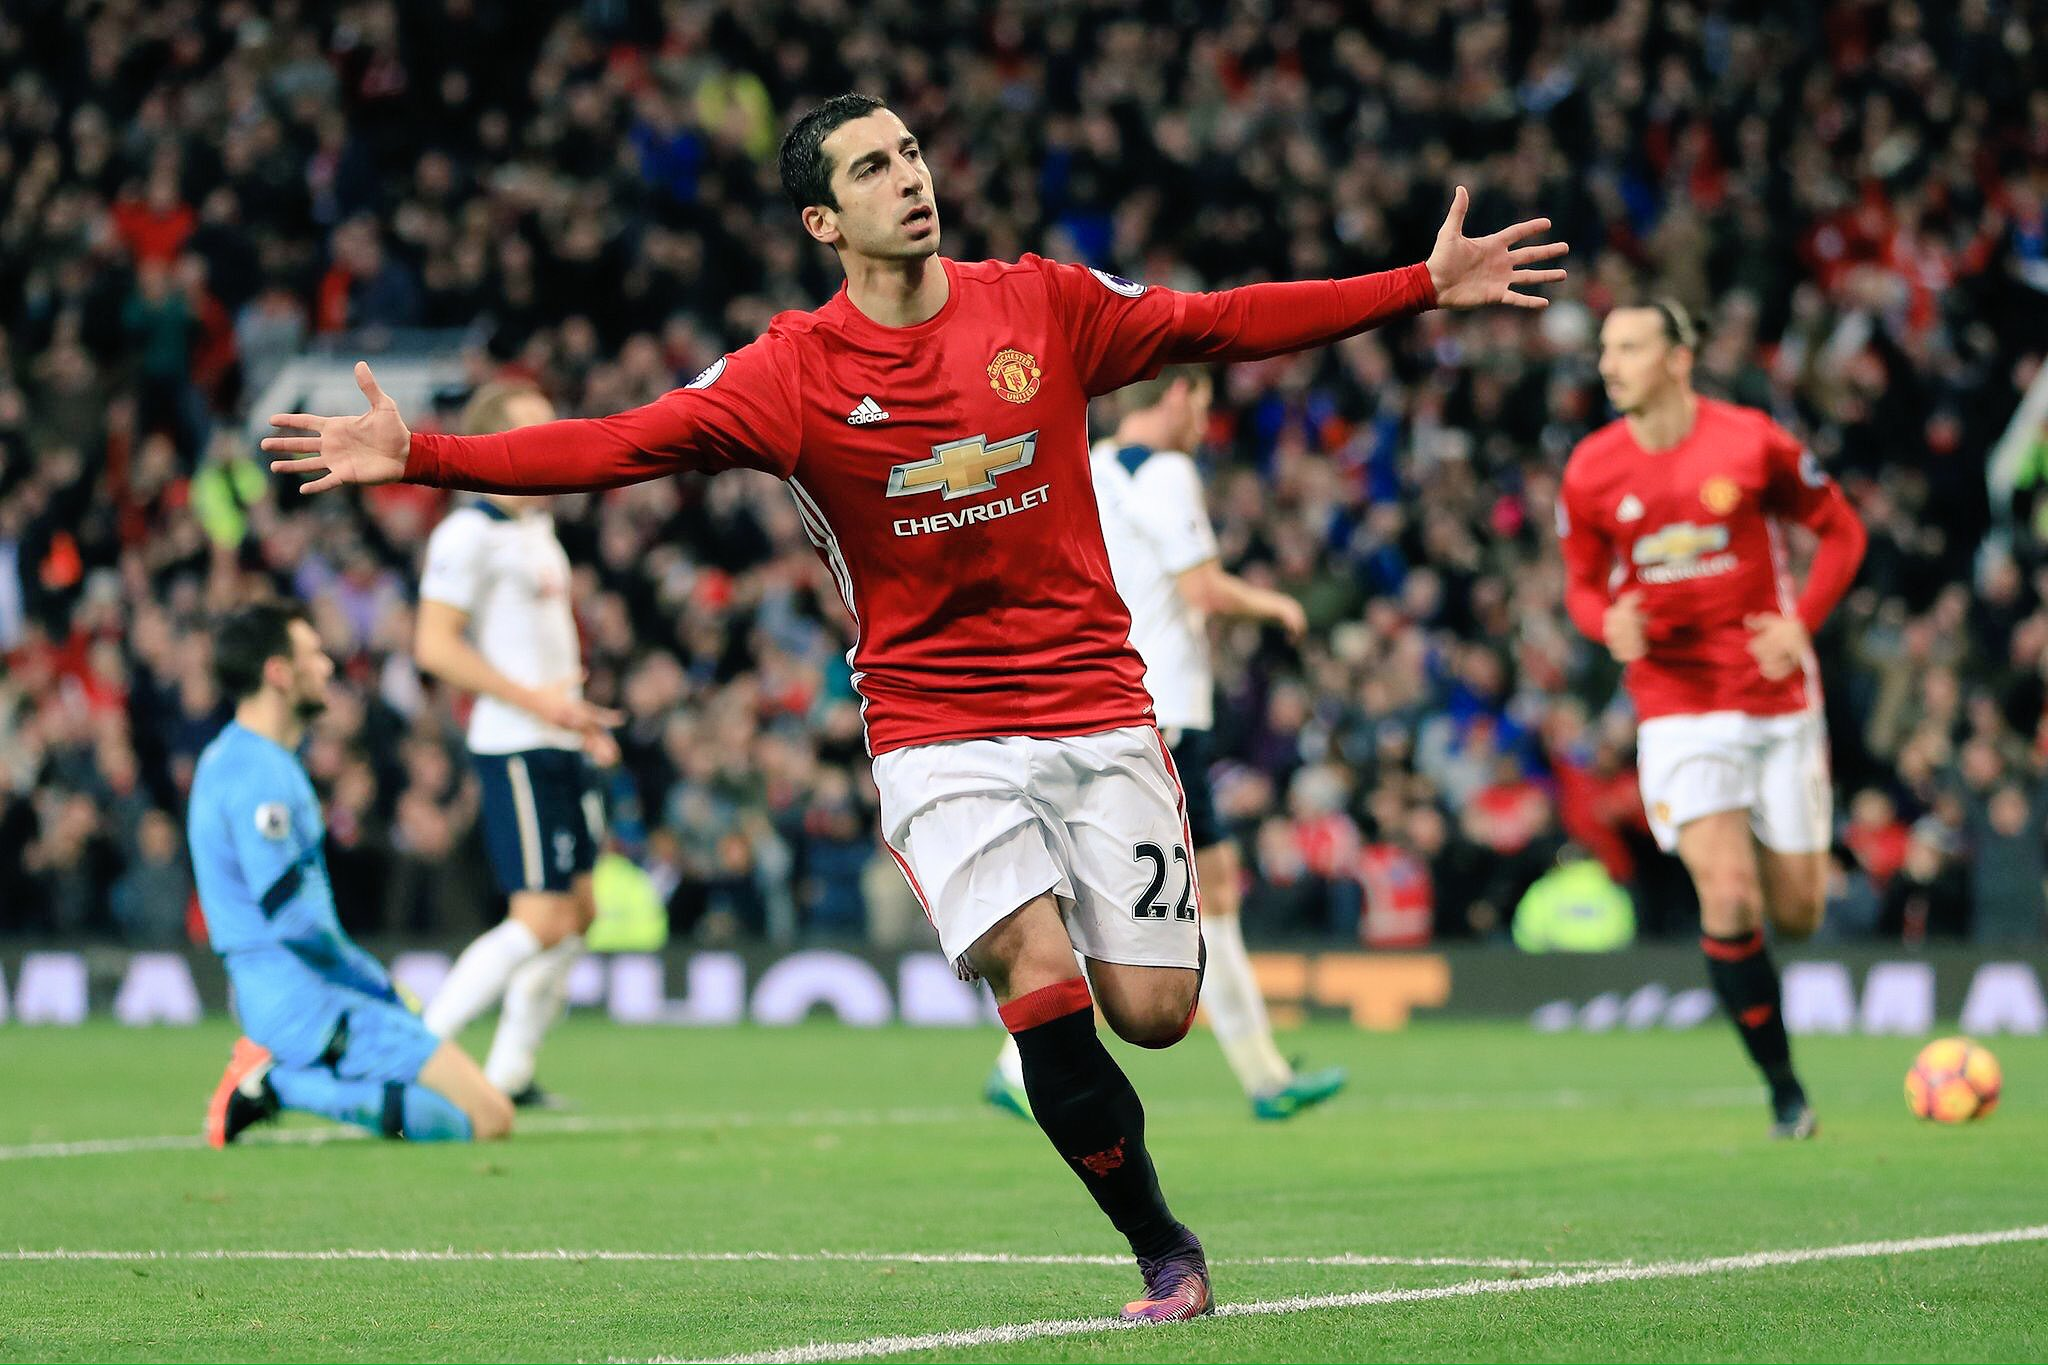 Mkhitaryan Scores First EPL Goal As United Edge Spurs